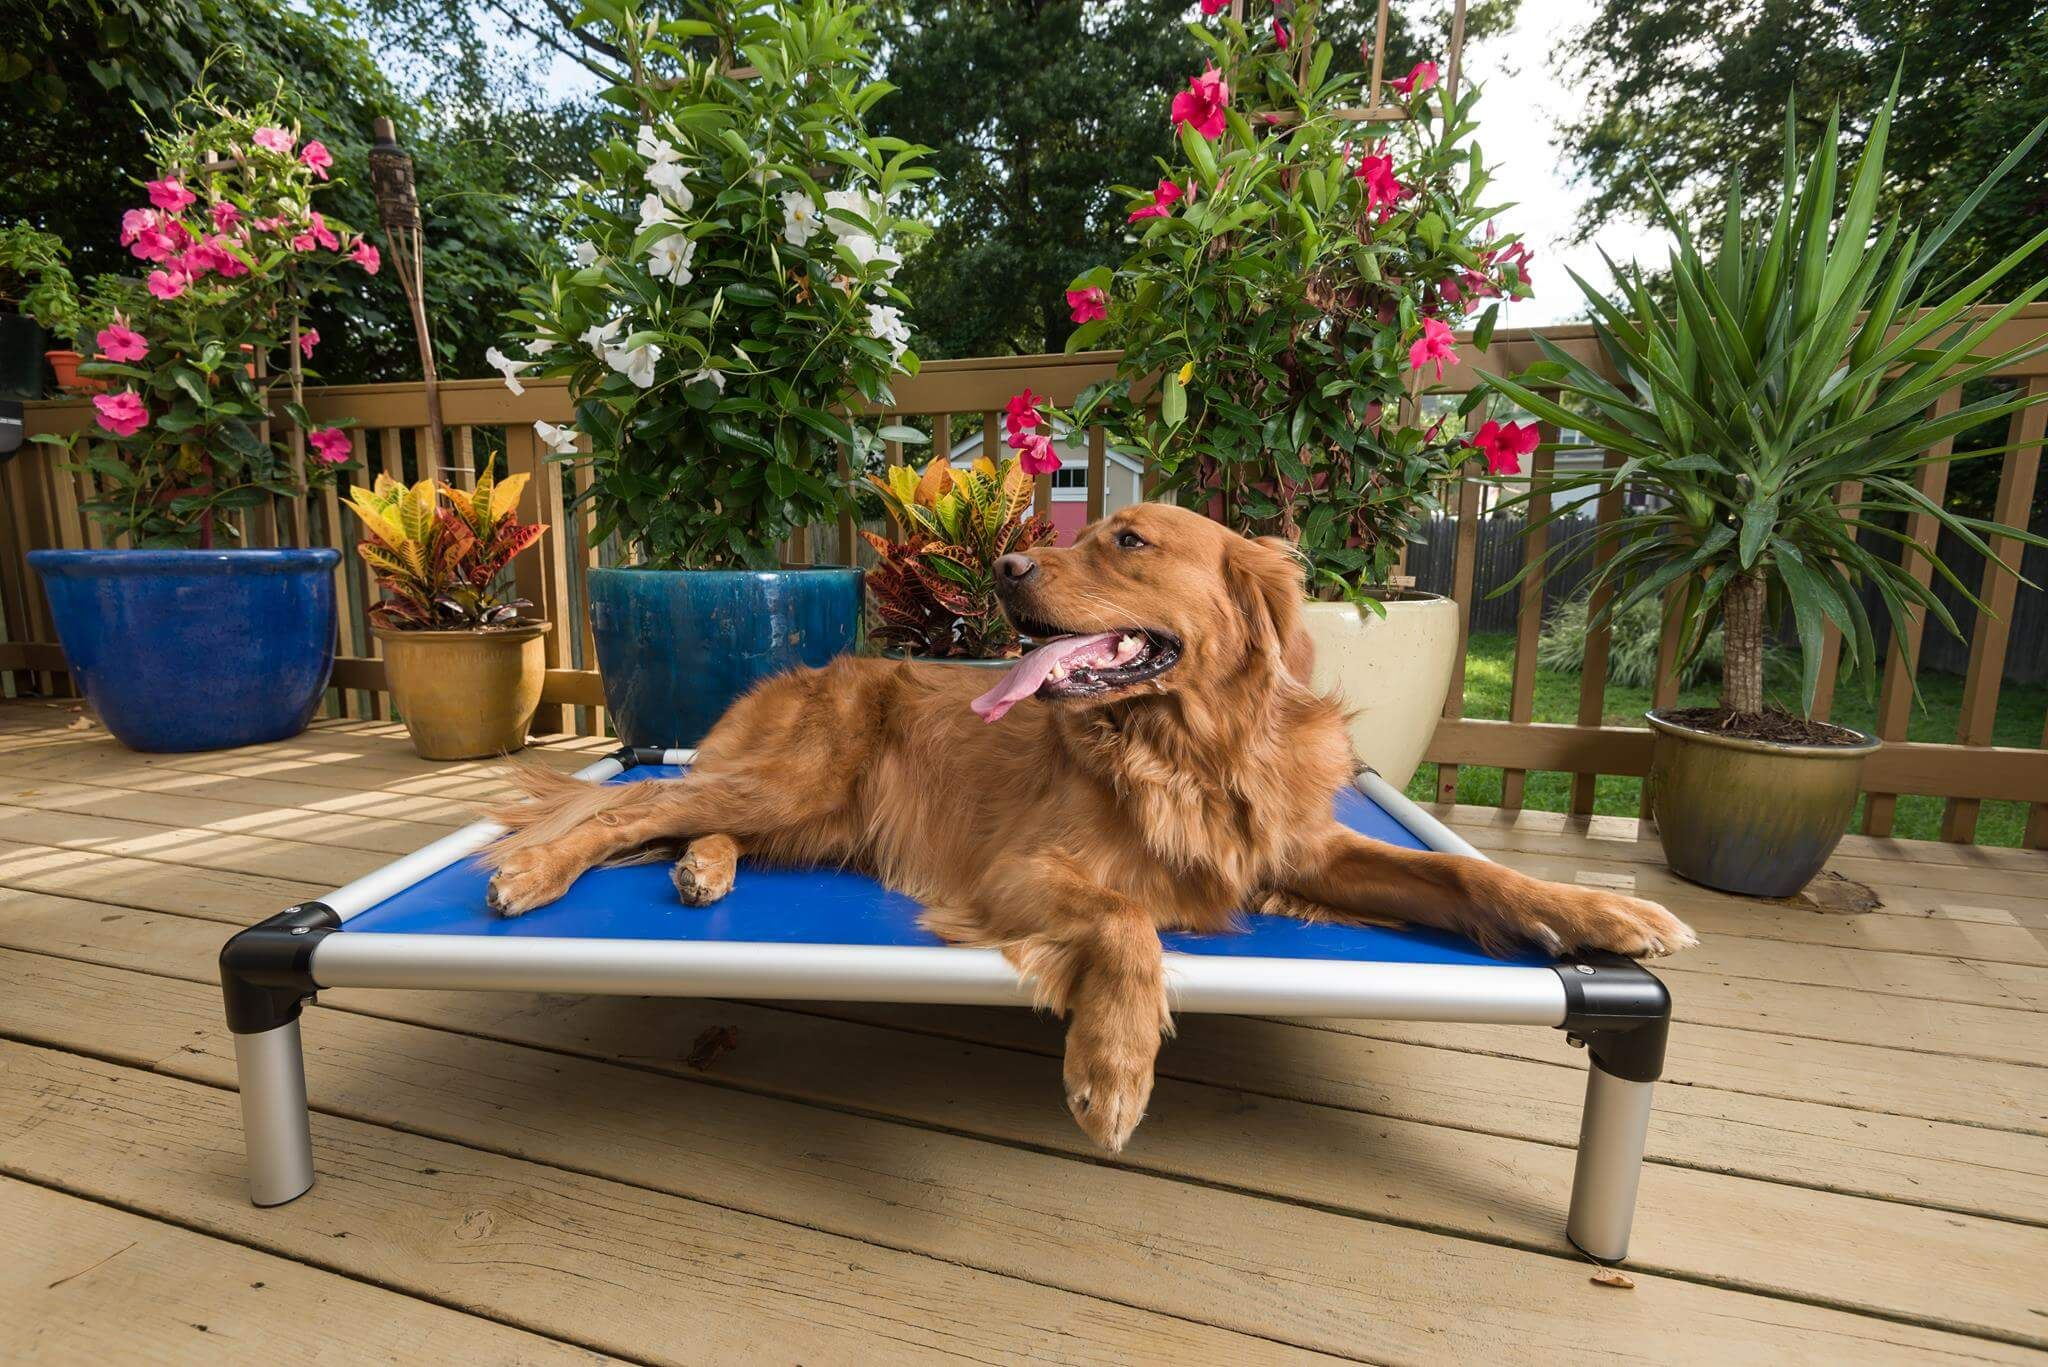 The Reasons Why You Should Invest in an Elevated Dog Bed